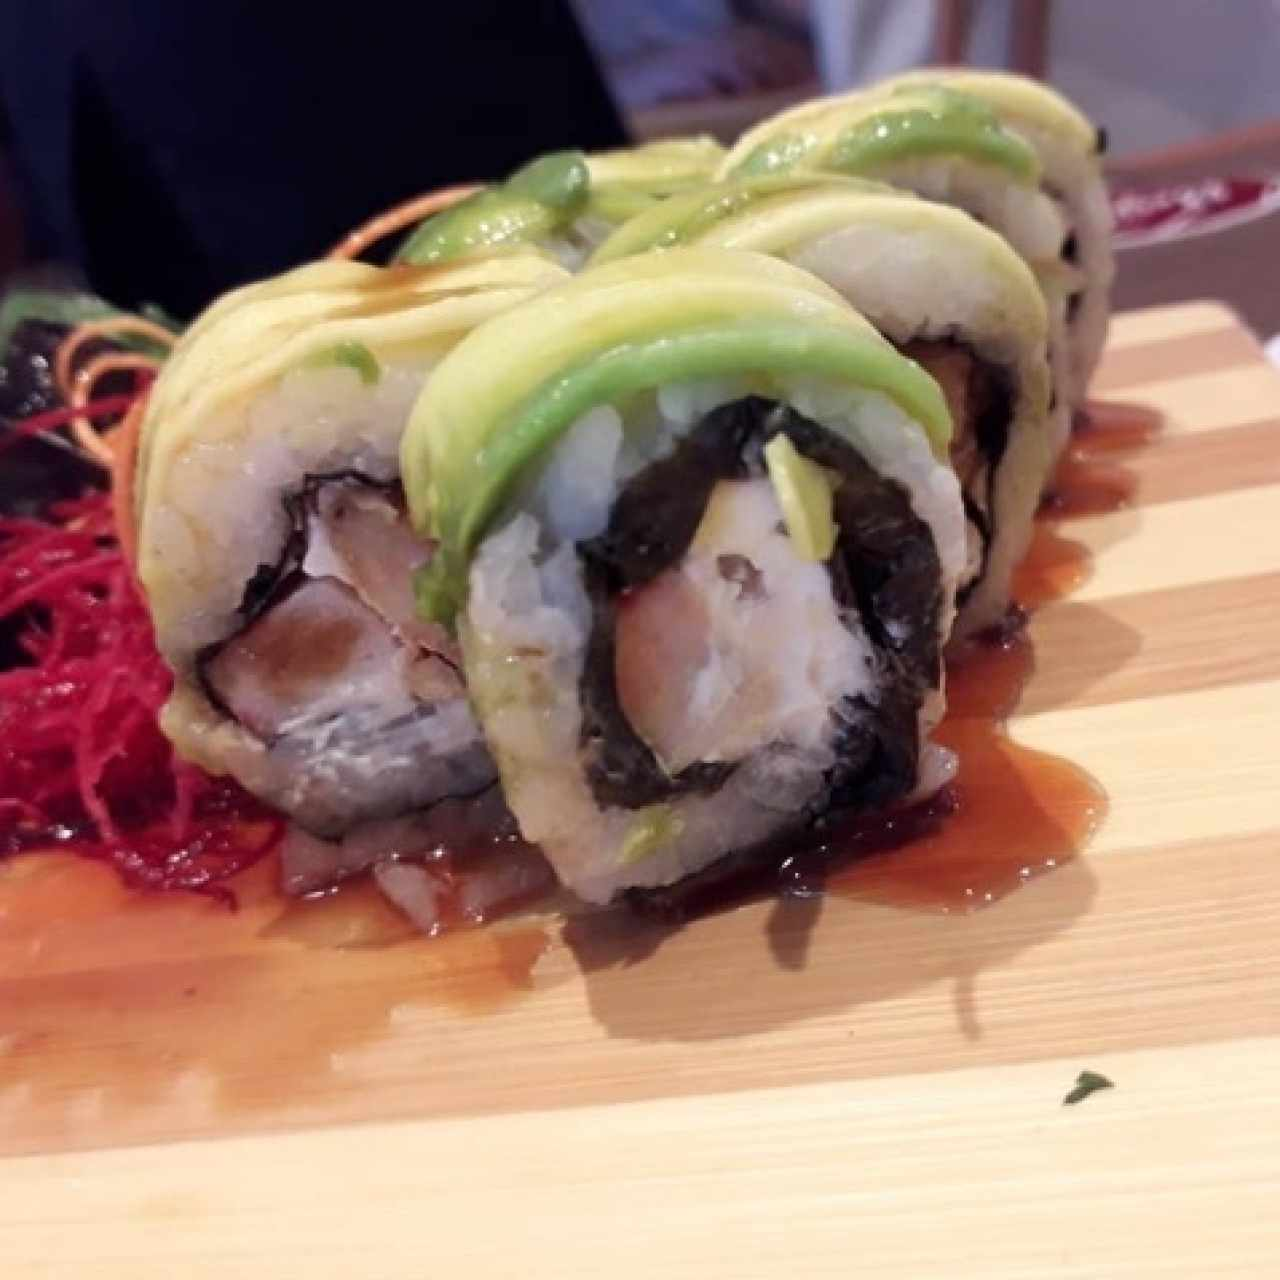 SUSHI ROLLS/MAKIS/PREMIUMS - Ebi Roll